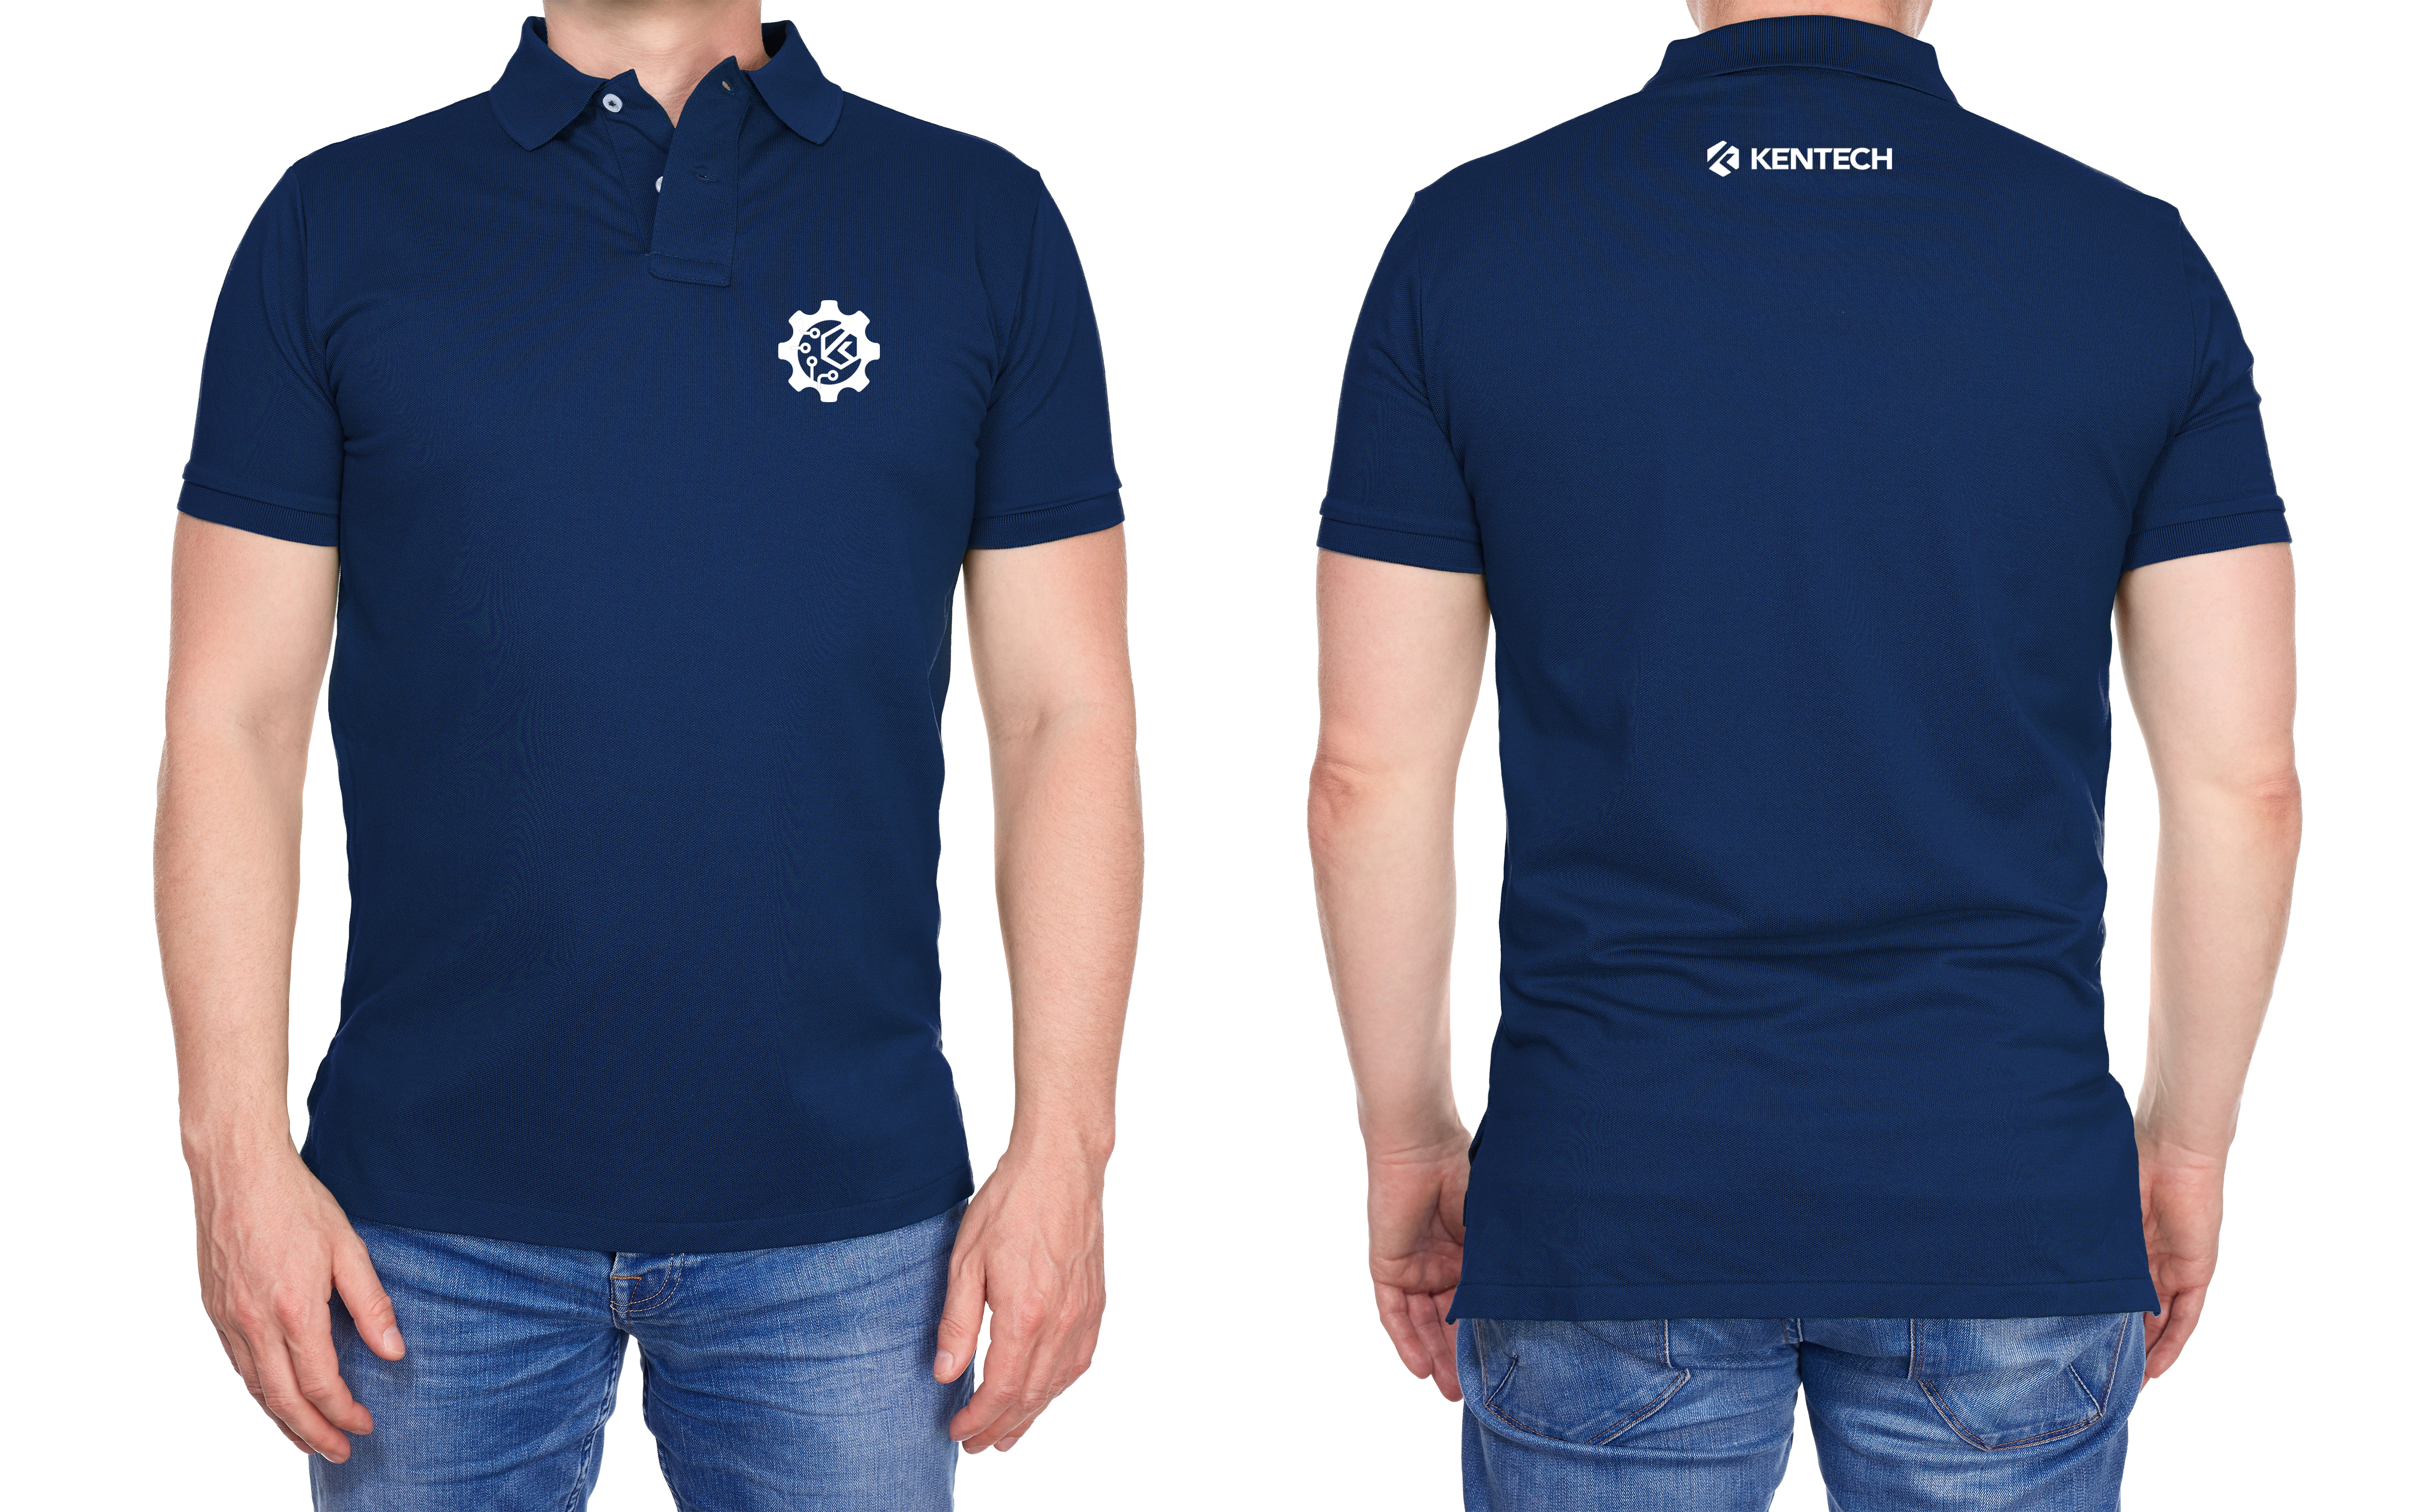 ITServicedesk-Shirt_22DEC2019